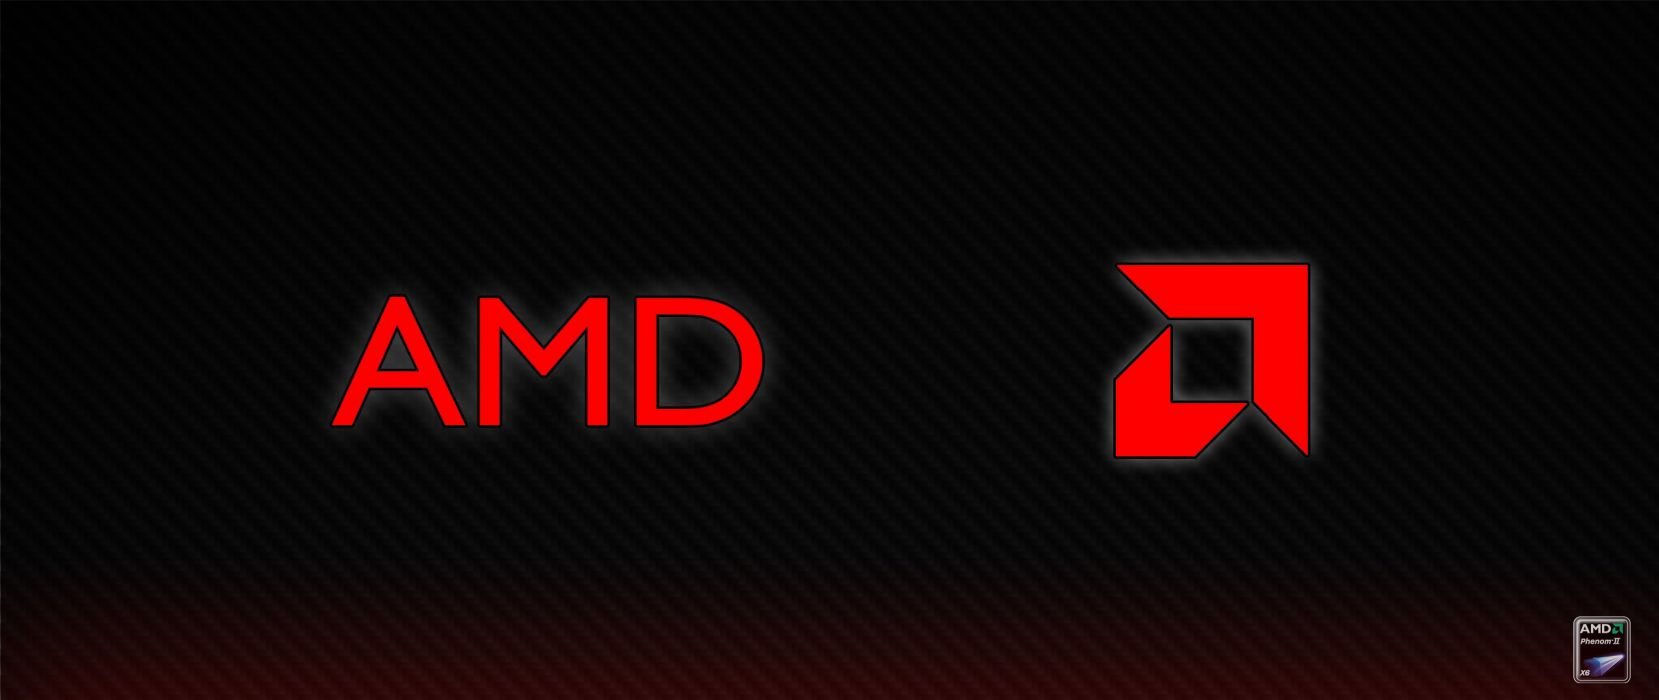 AMD computer gaming poster wallpaper